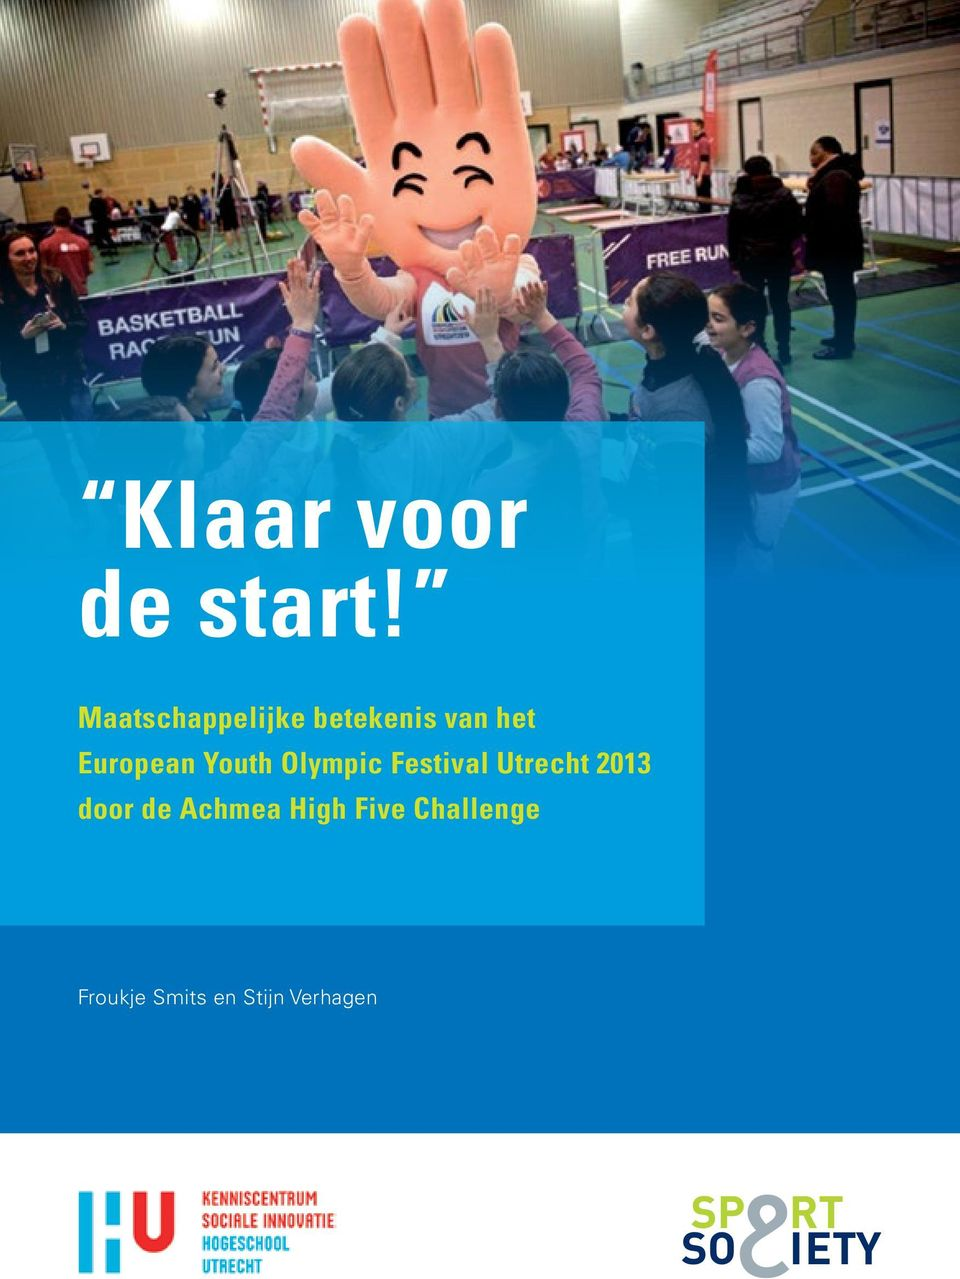 European Youth Olympic Festival Utrecht